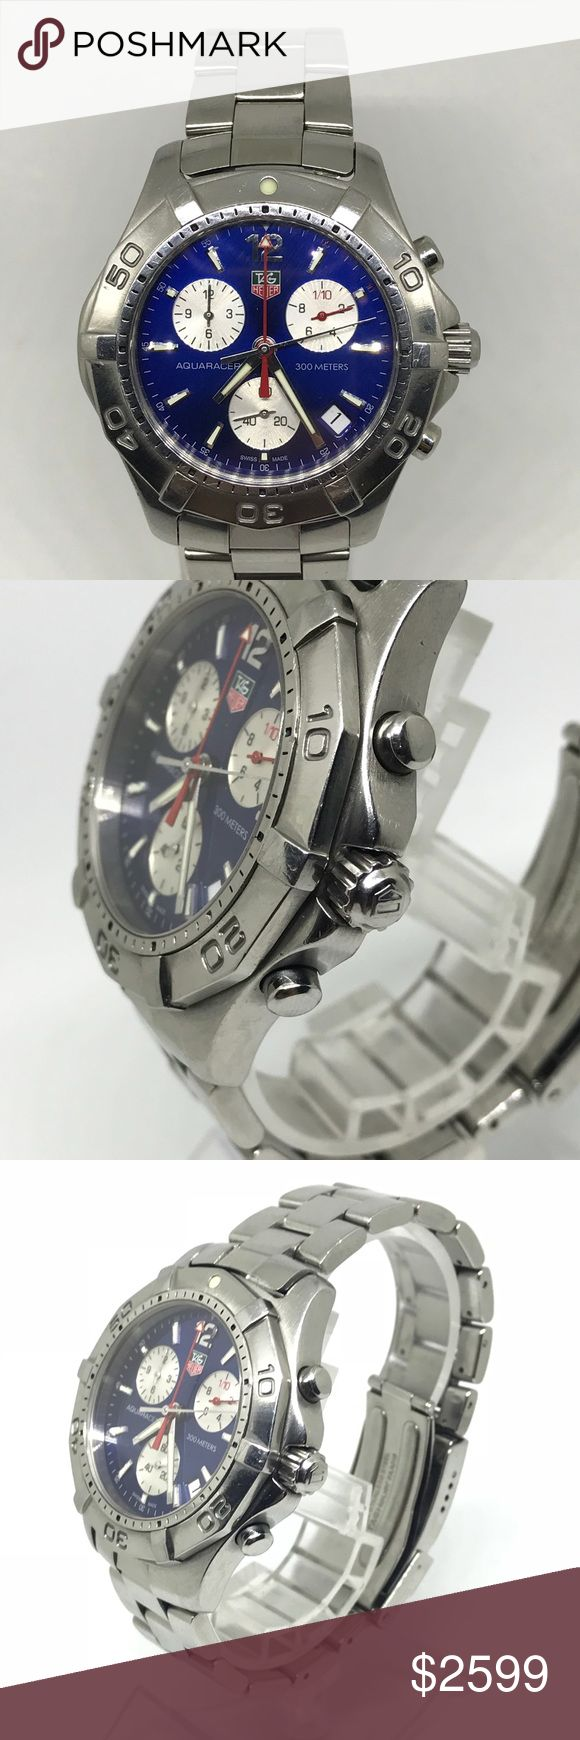 Tag Heuer aquaracer chronograph steel mens watch Preowned chronograph Tag Heuer aquaracer mens watch. Very good condition all pictures real. No box and papers. Tag Heuer Accessories Watches